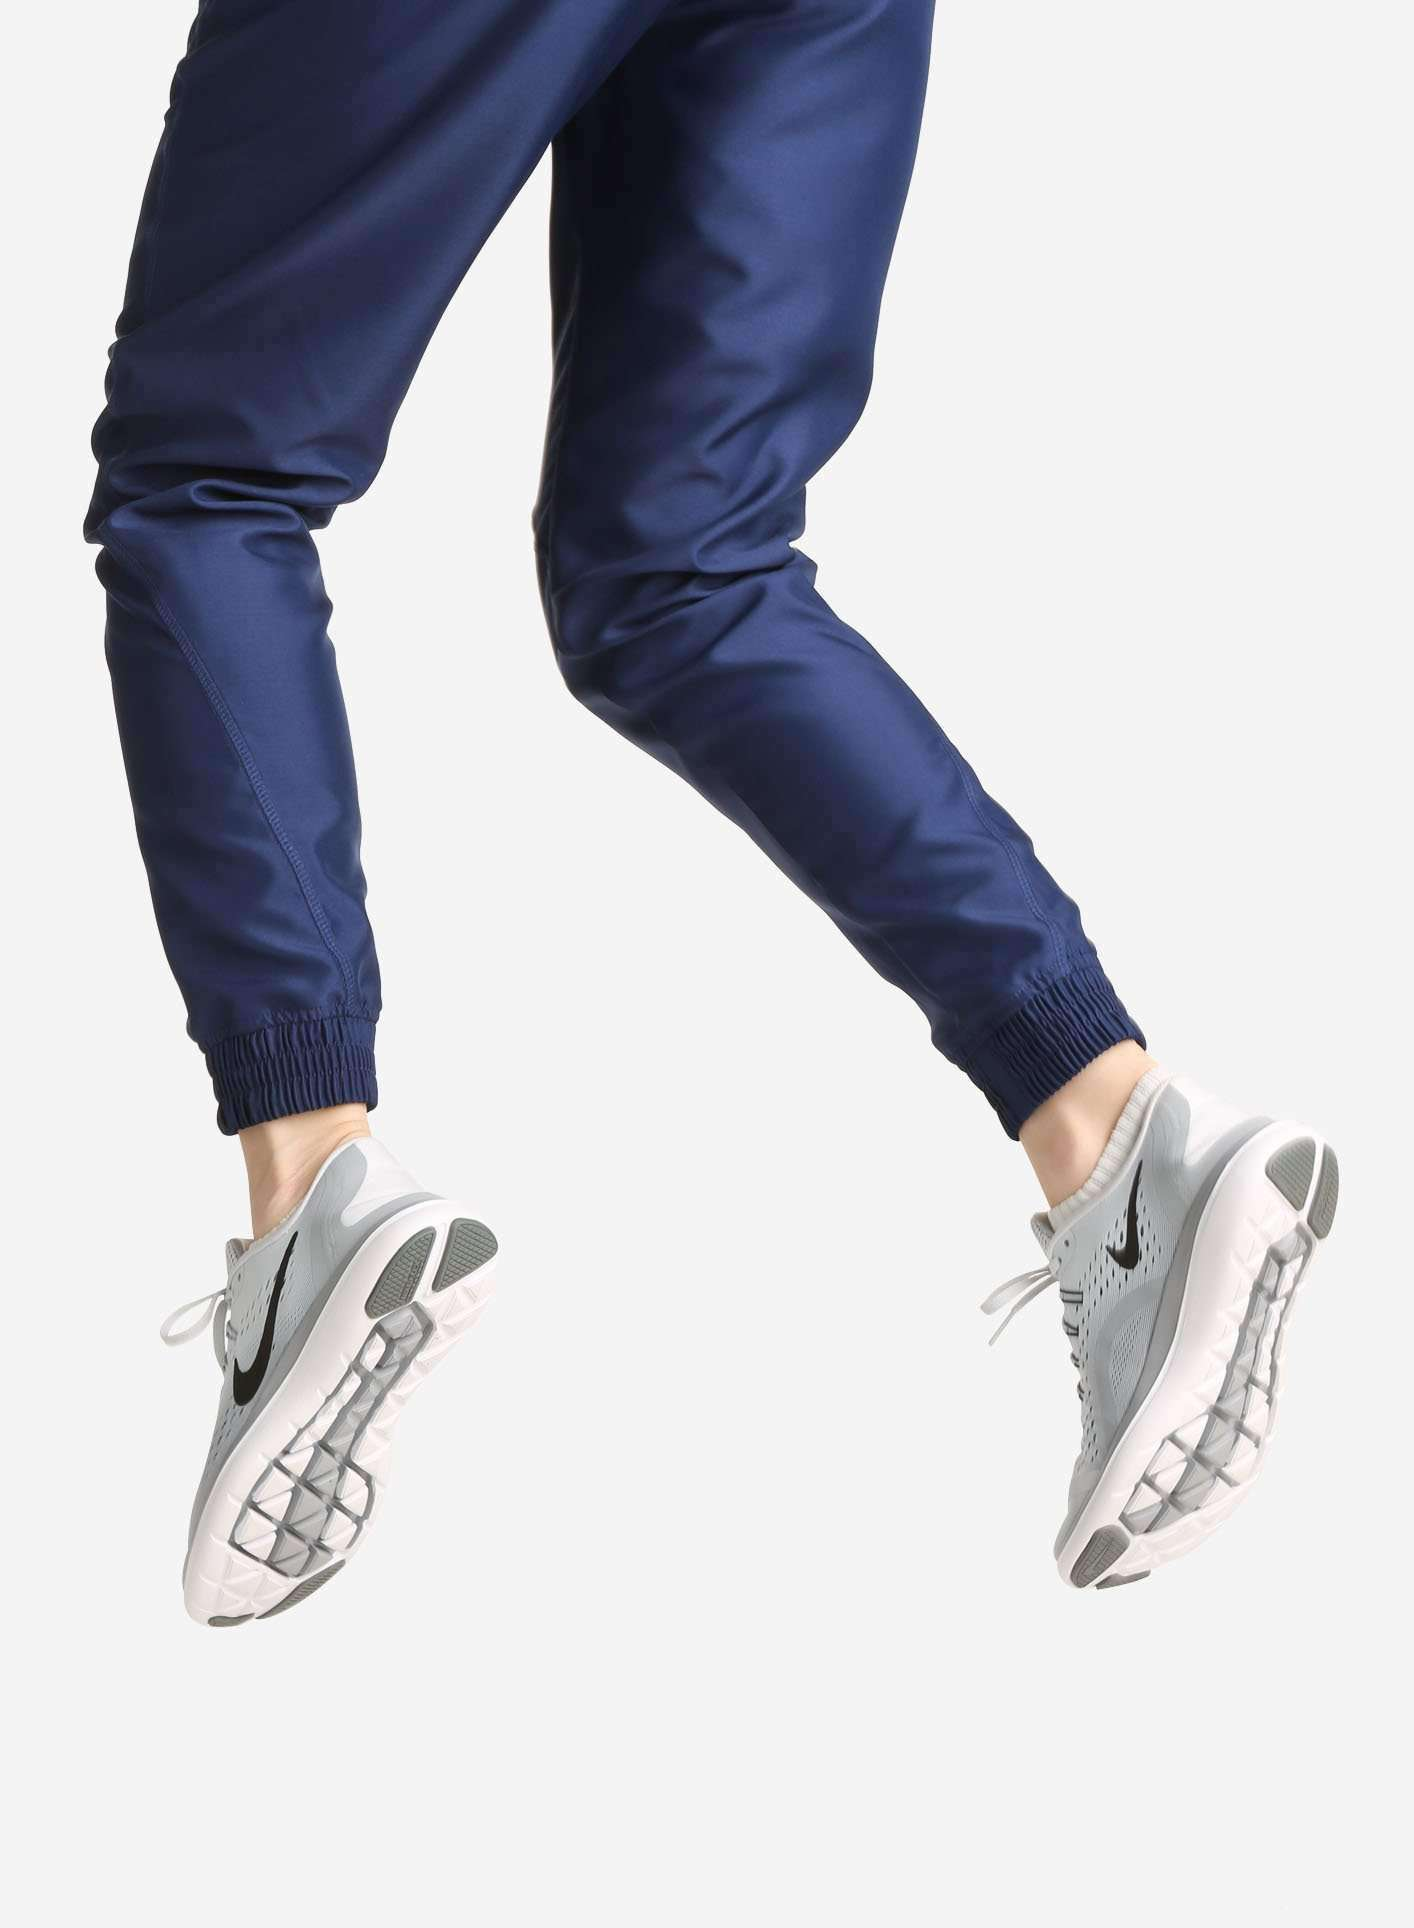 Women's Jogger Scrub Pants in Navy Ankle Cuff View